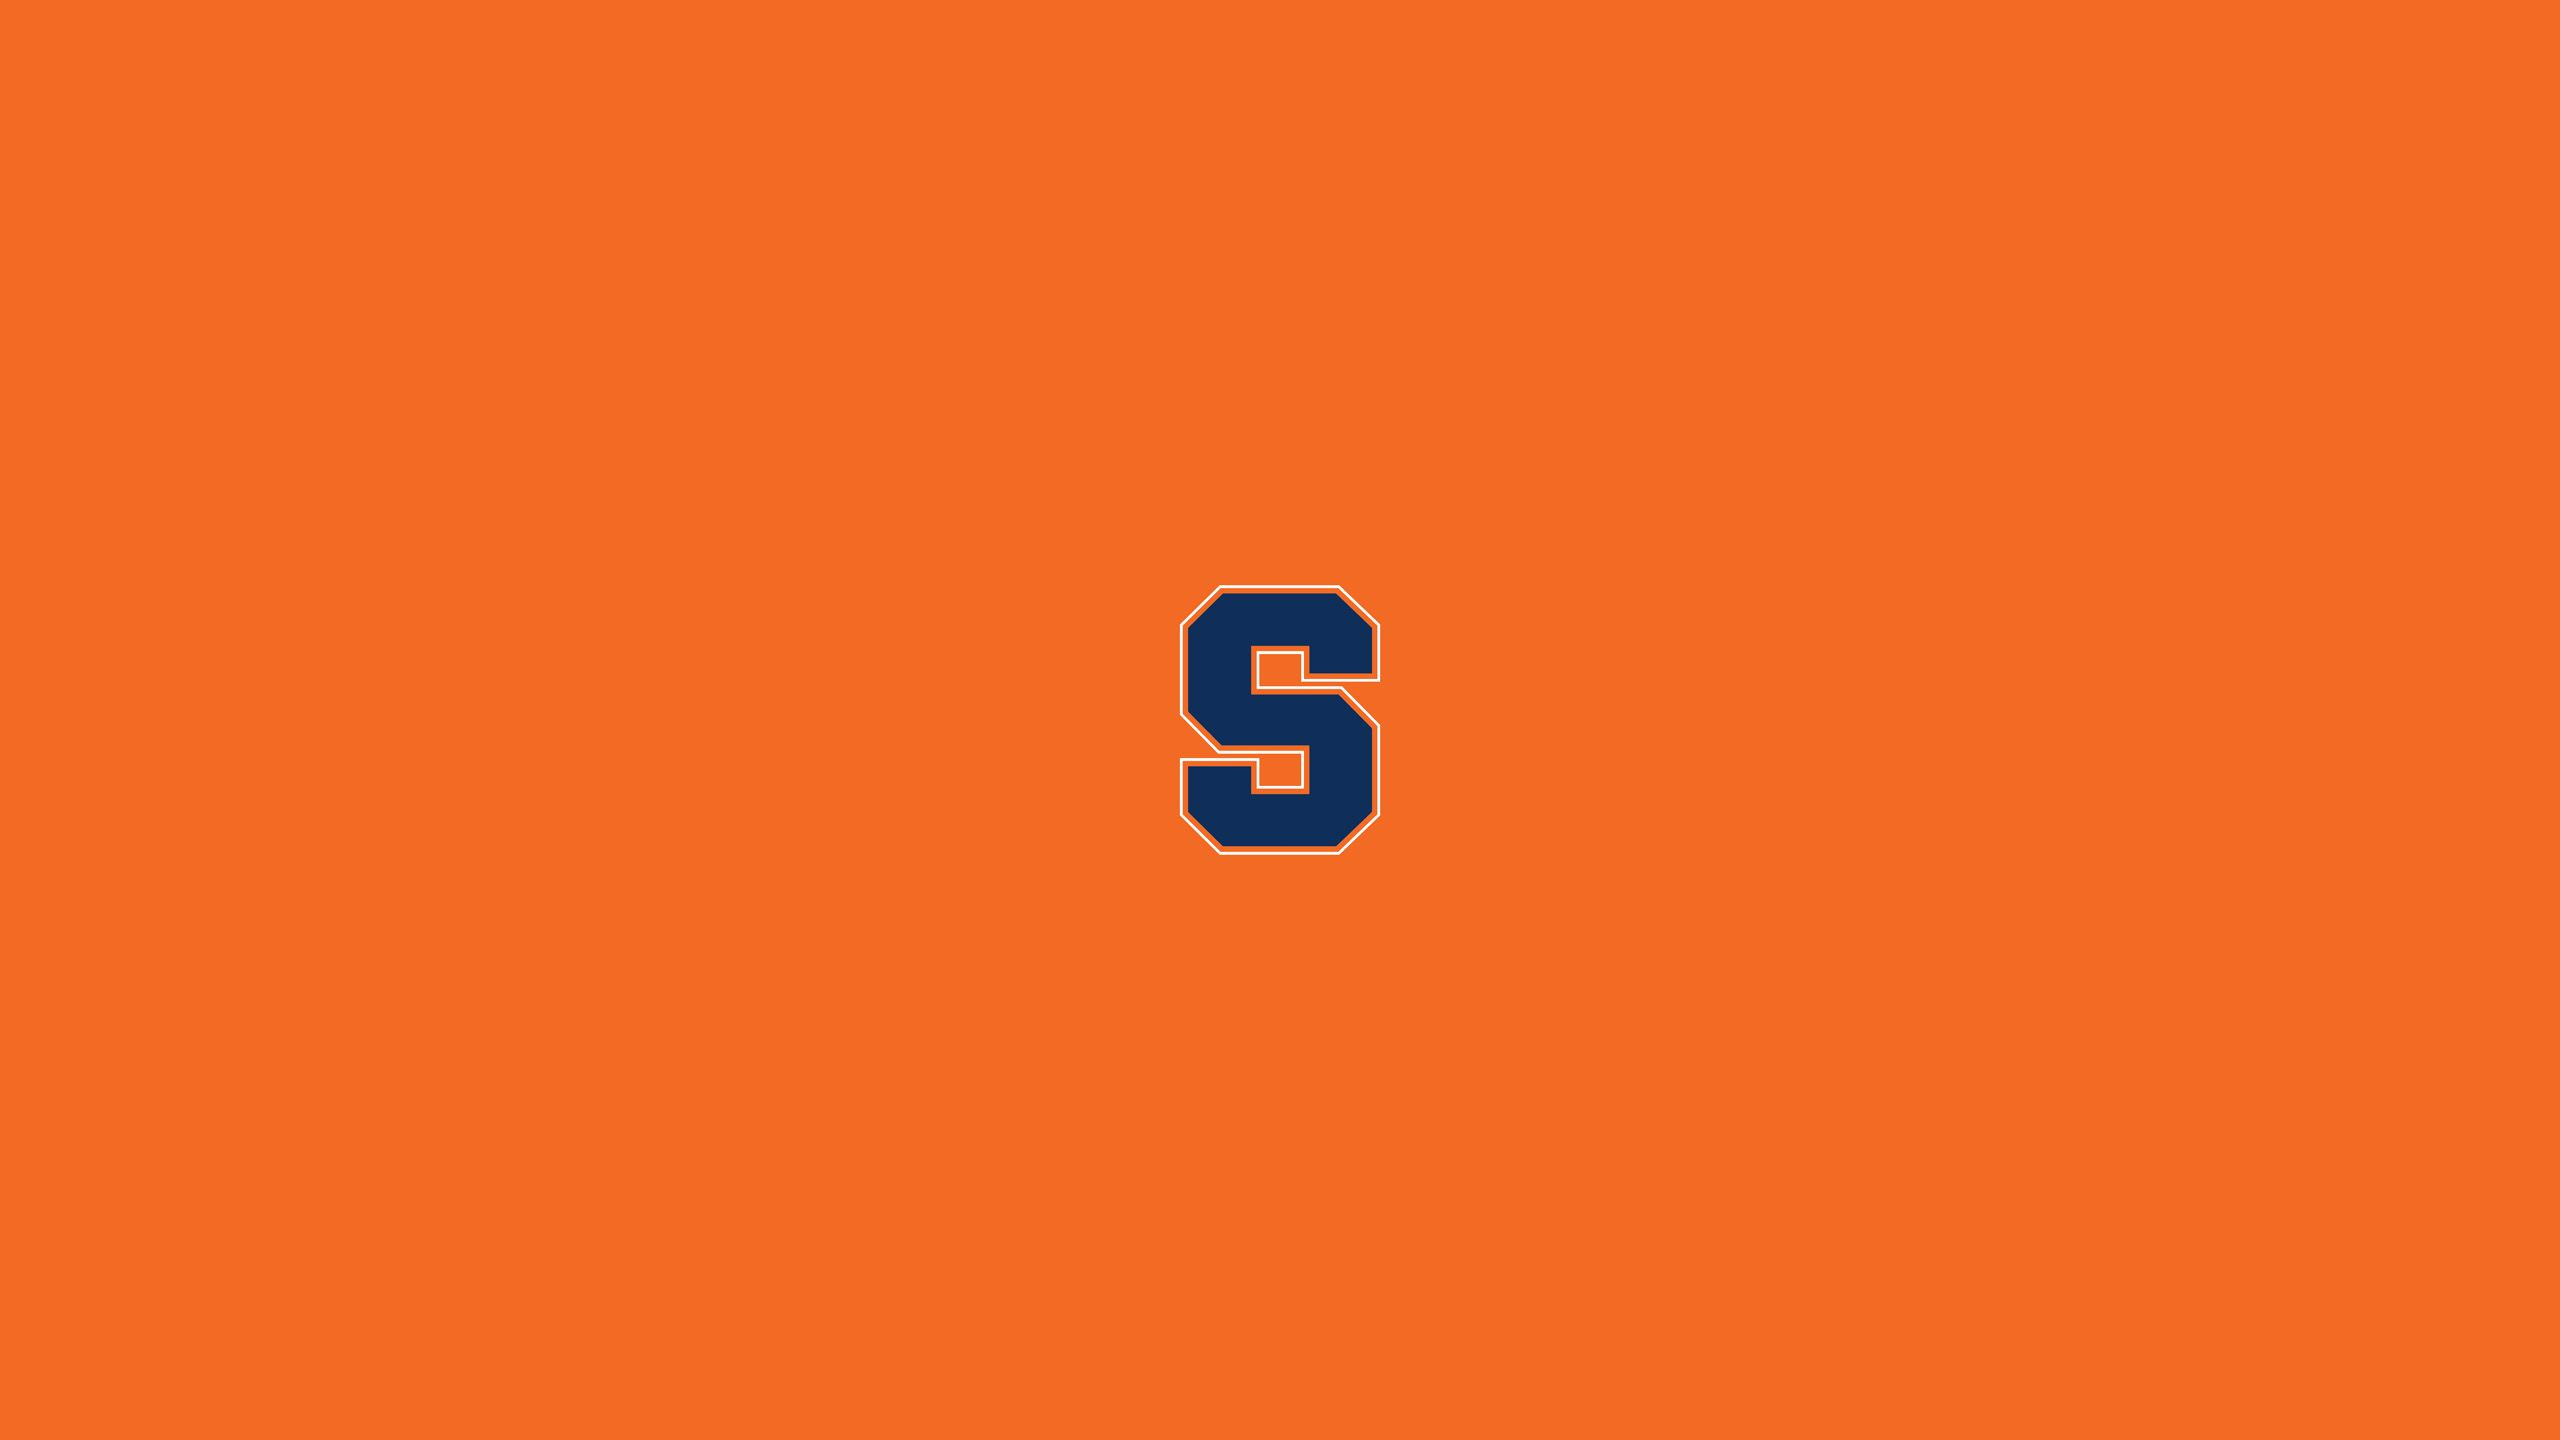 Minimal Syracuse Orange Wallpaper Wallpapers Wall Papers Tapestries